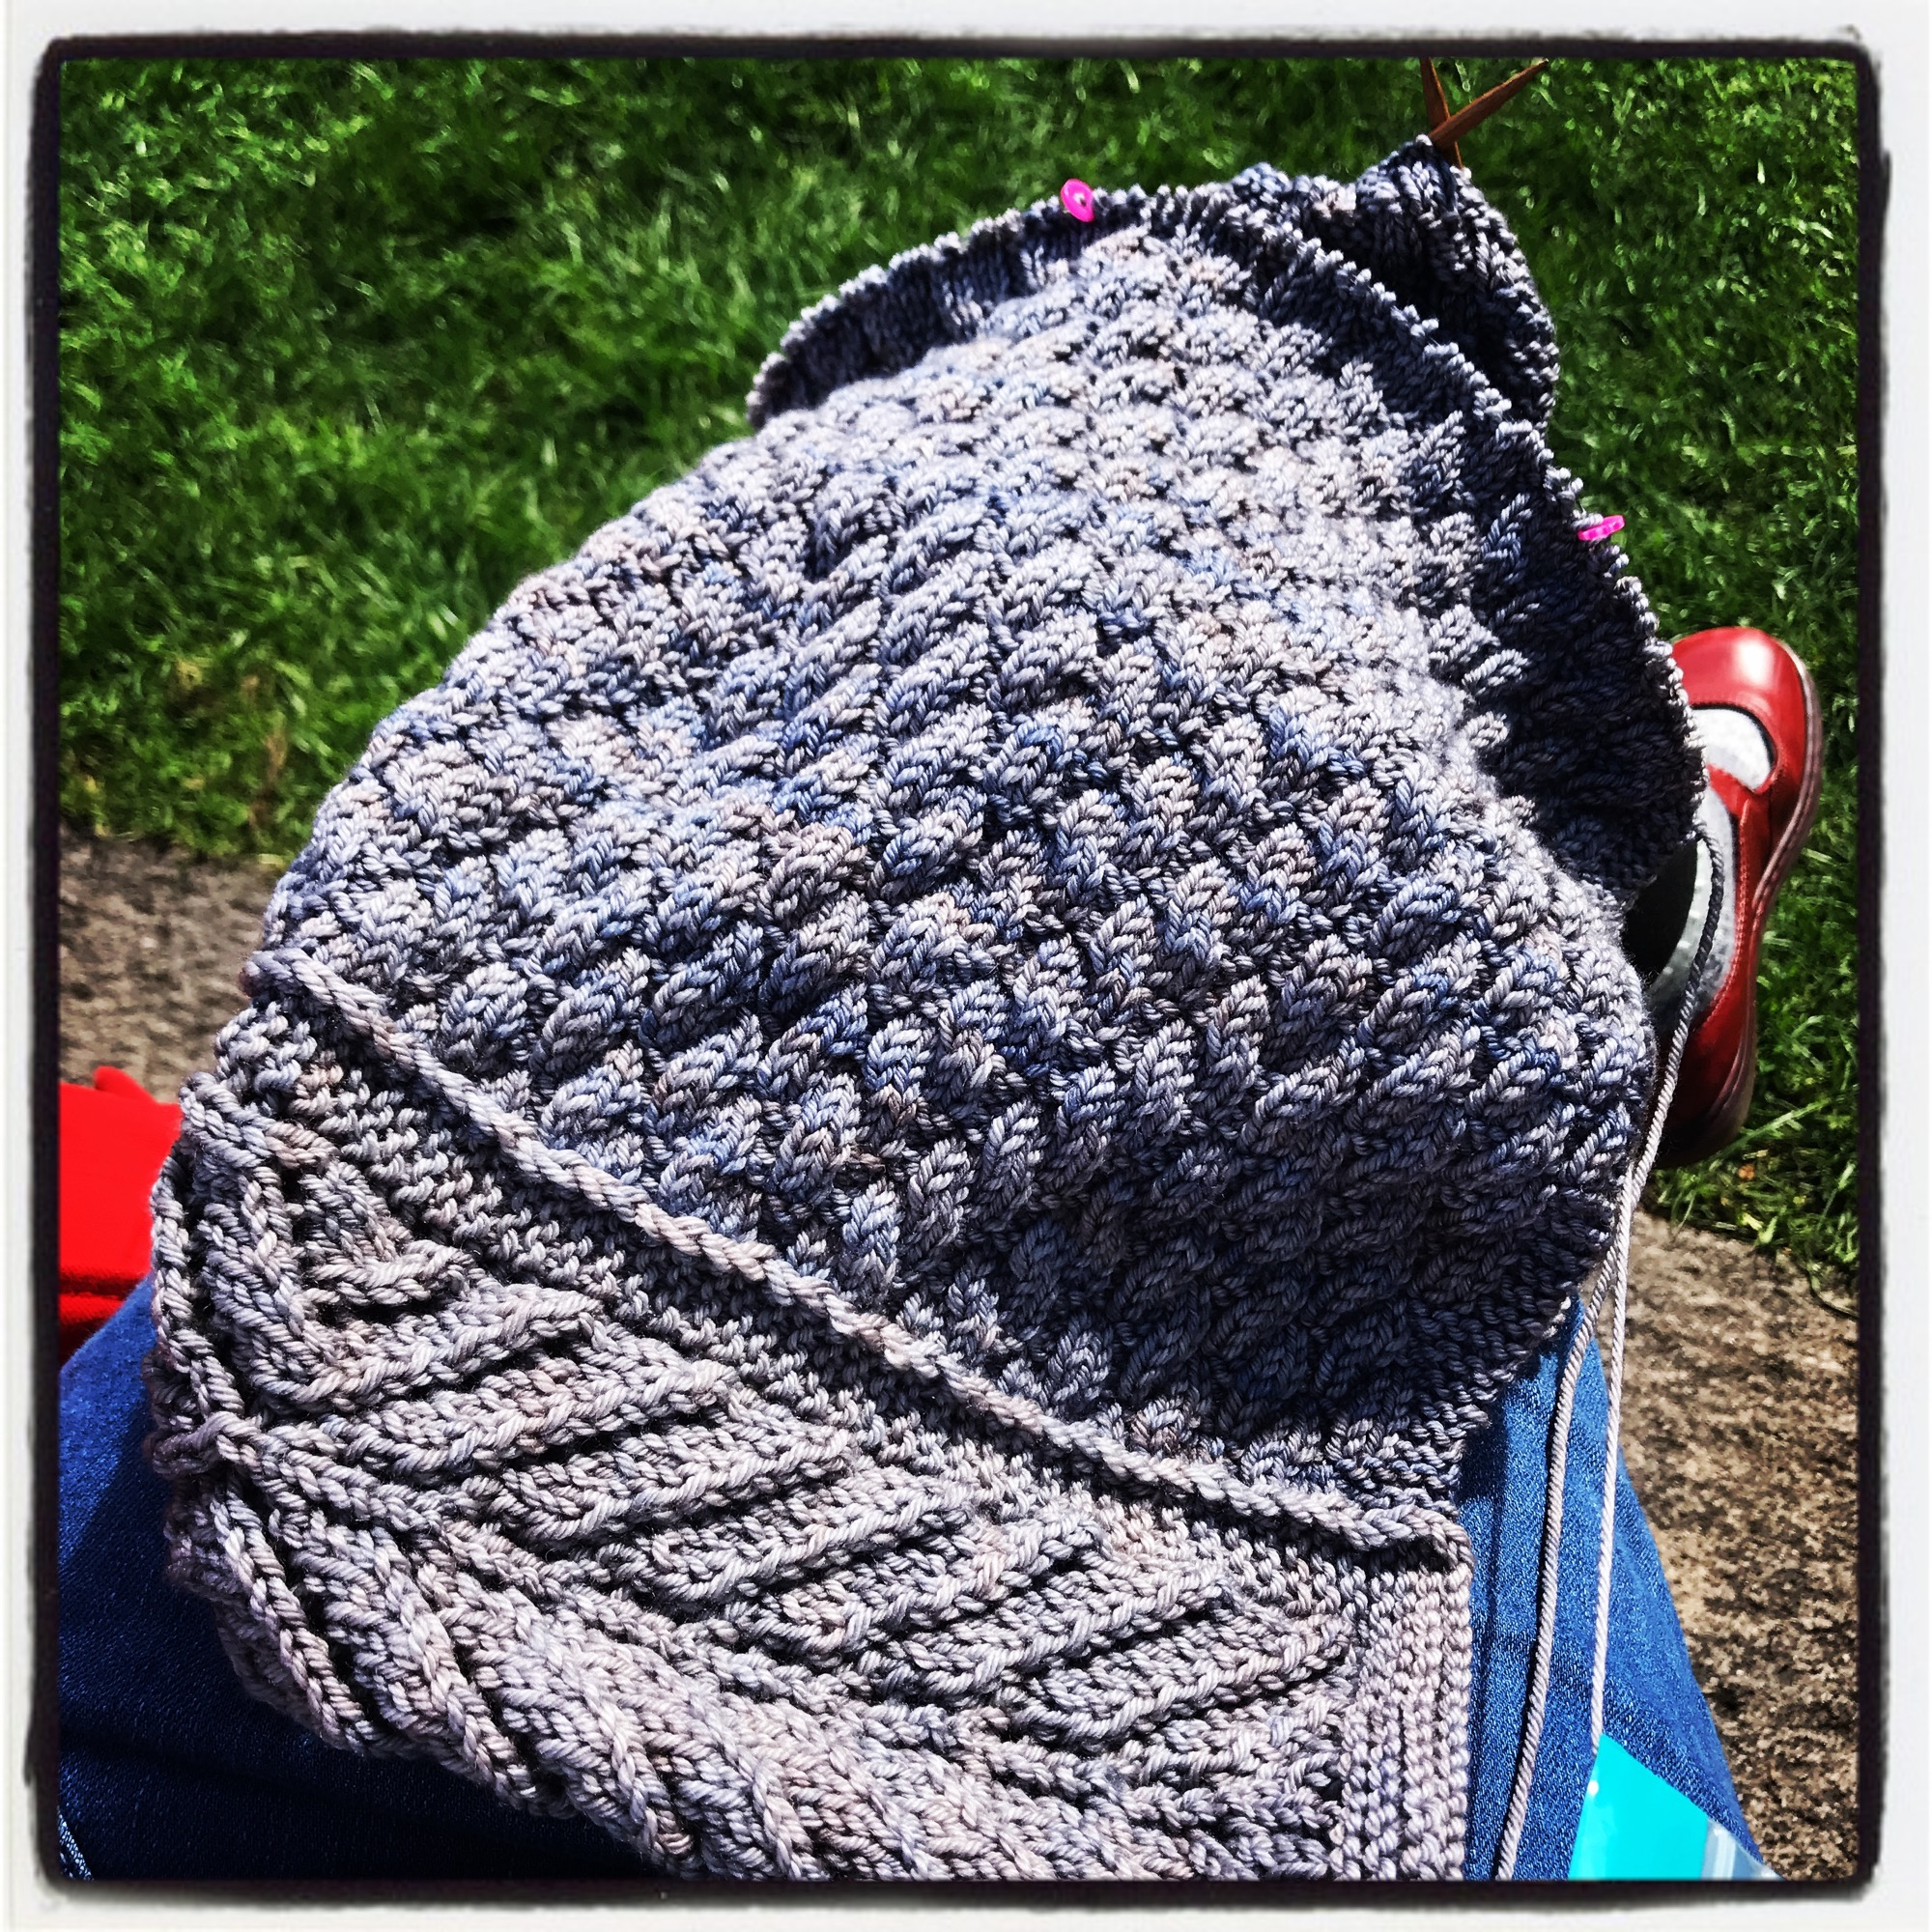 With a few days of park knitting, my Little Tern blanket is coming along nicely.